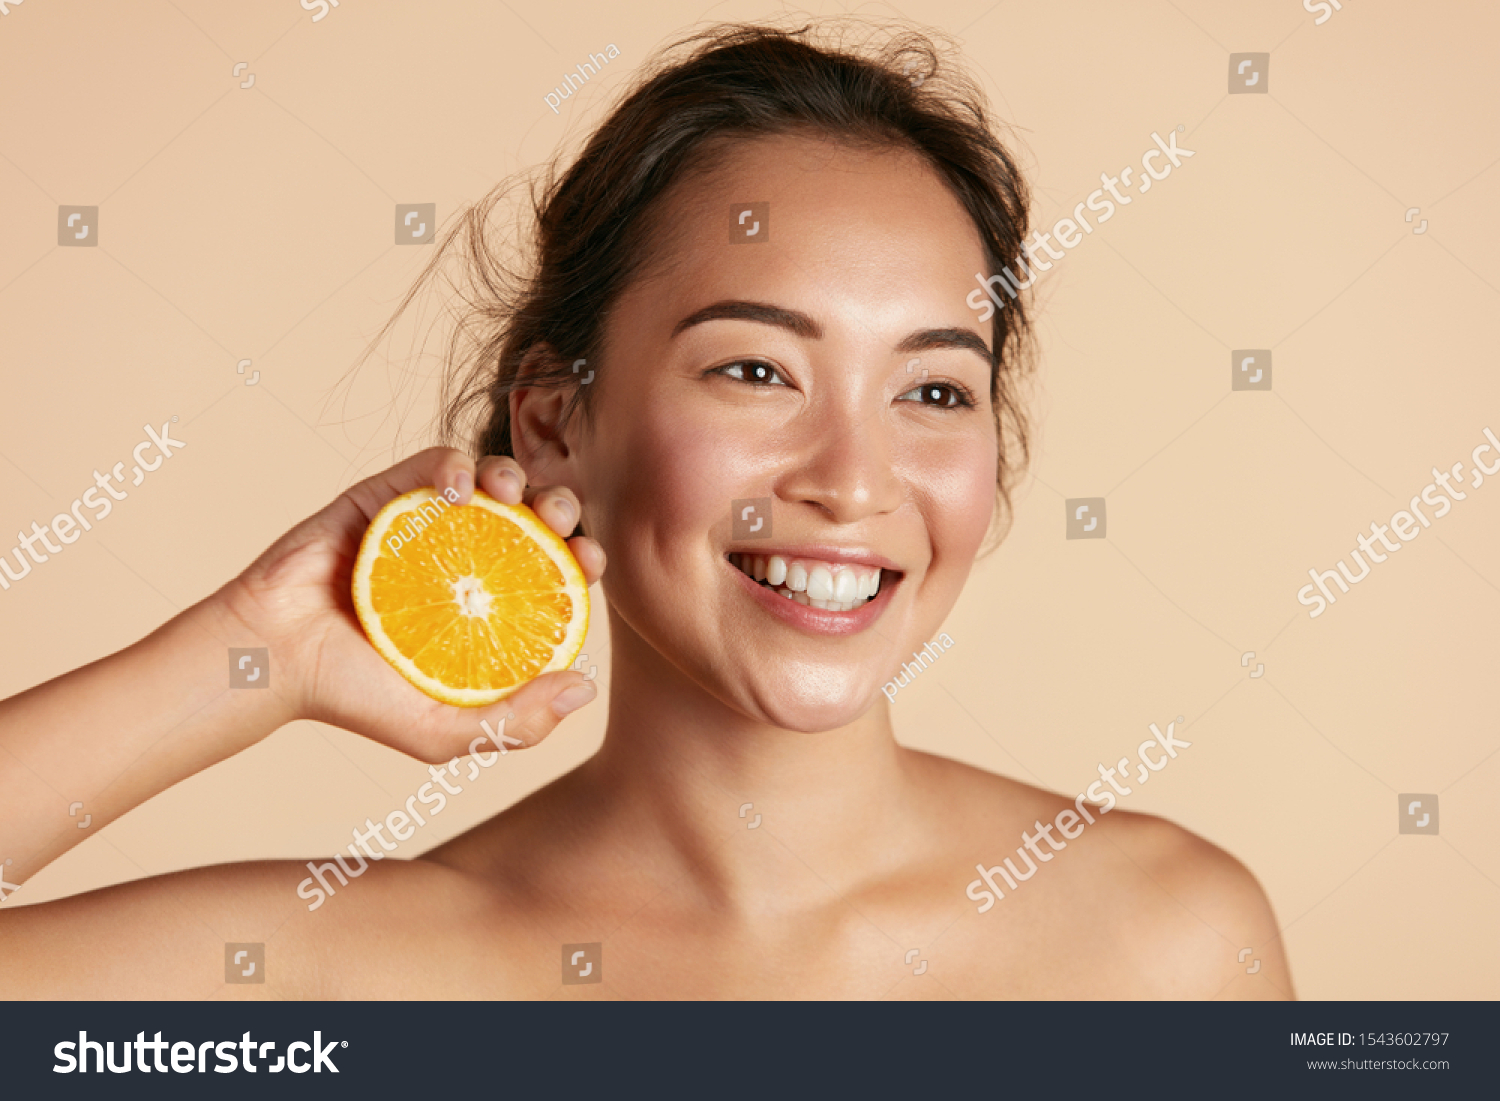 Beauty. Smiling woman with radiant face skin and orange portrait. Beautiful smiling asian girl model with natural makeup, healthy smile and glowing hydrated facial skin. Vitamin C cosmetics concept #1543602797